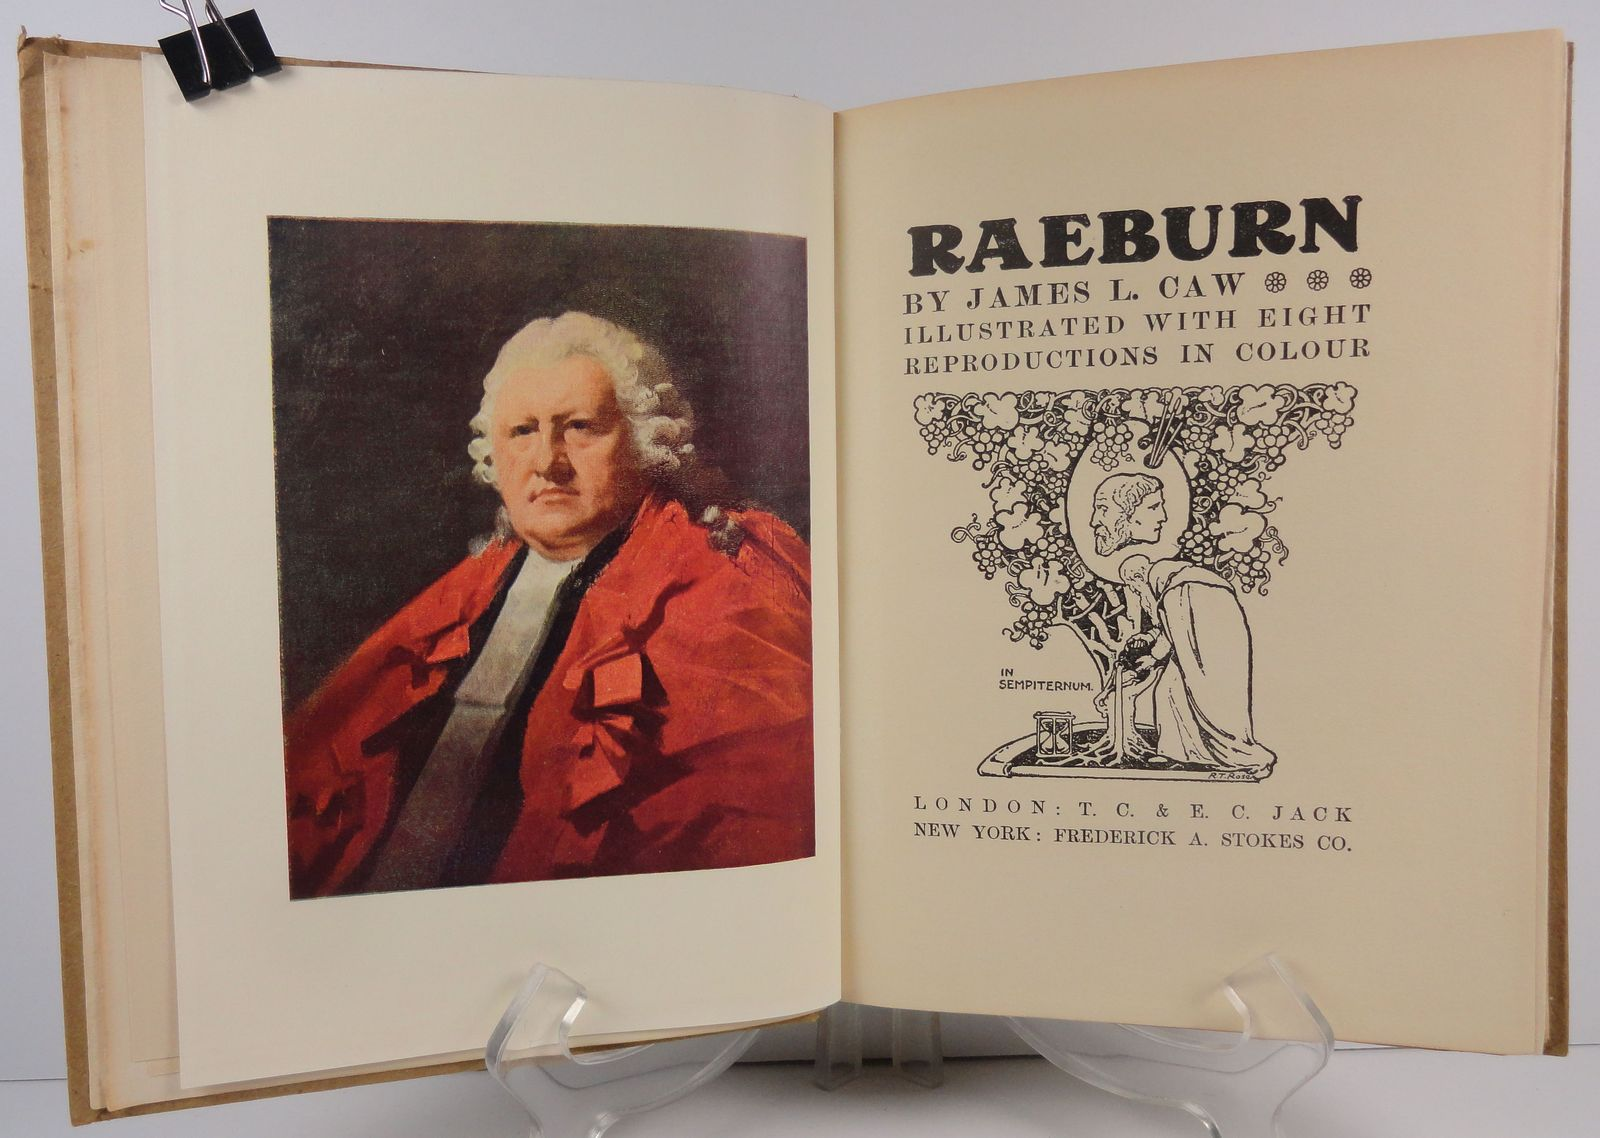 Raeburn Masterpieces in Colour by James L. Caw